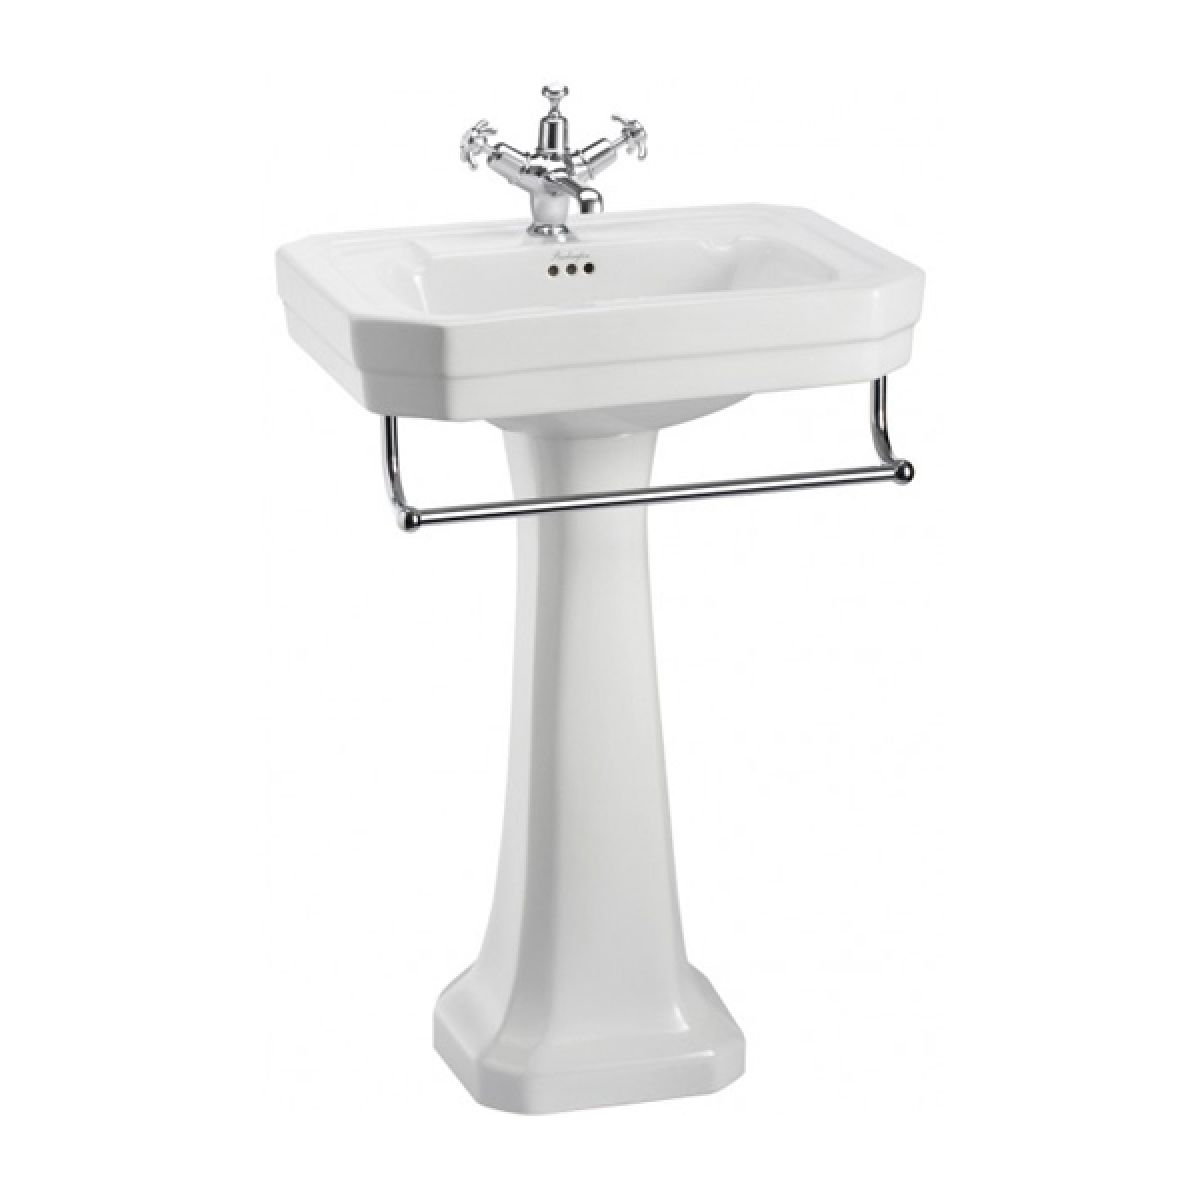 Burlington Victorian Basin with Standard Pedestal and Towel Raill 560mm